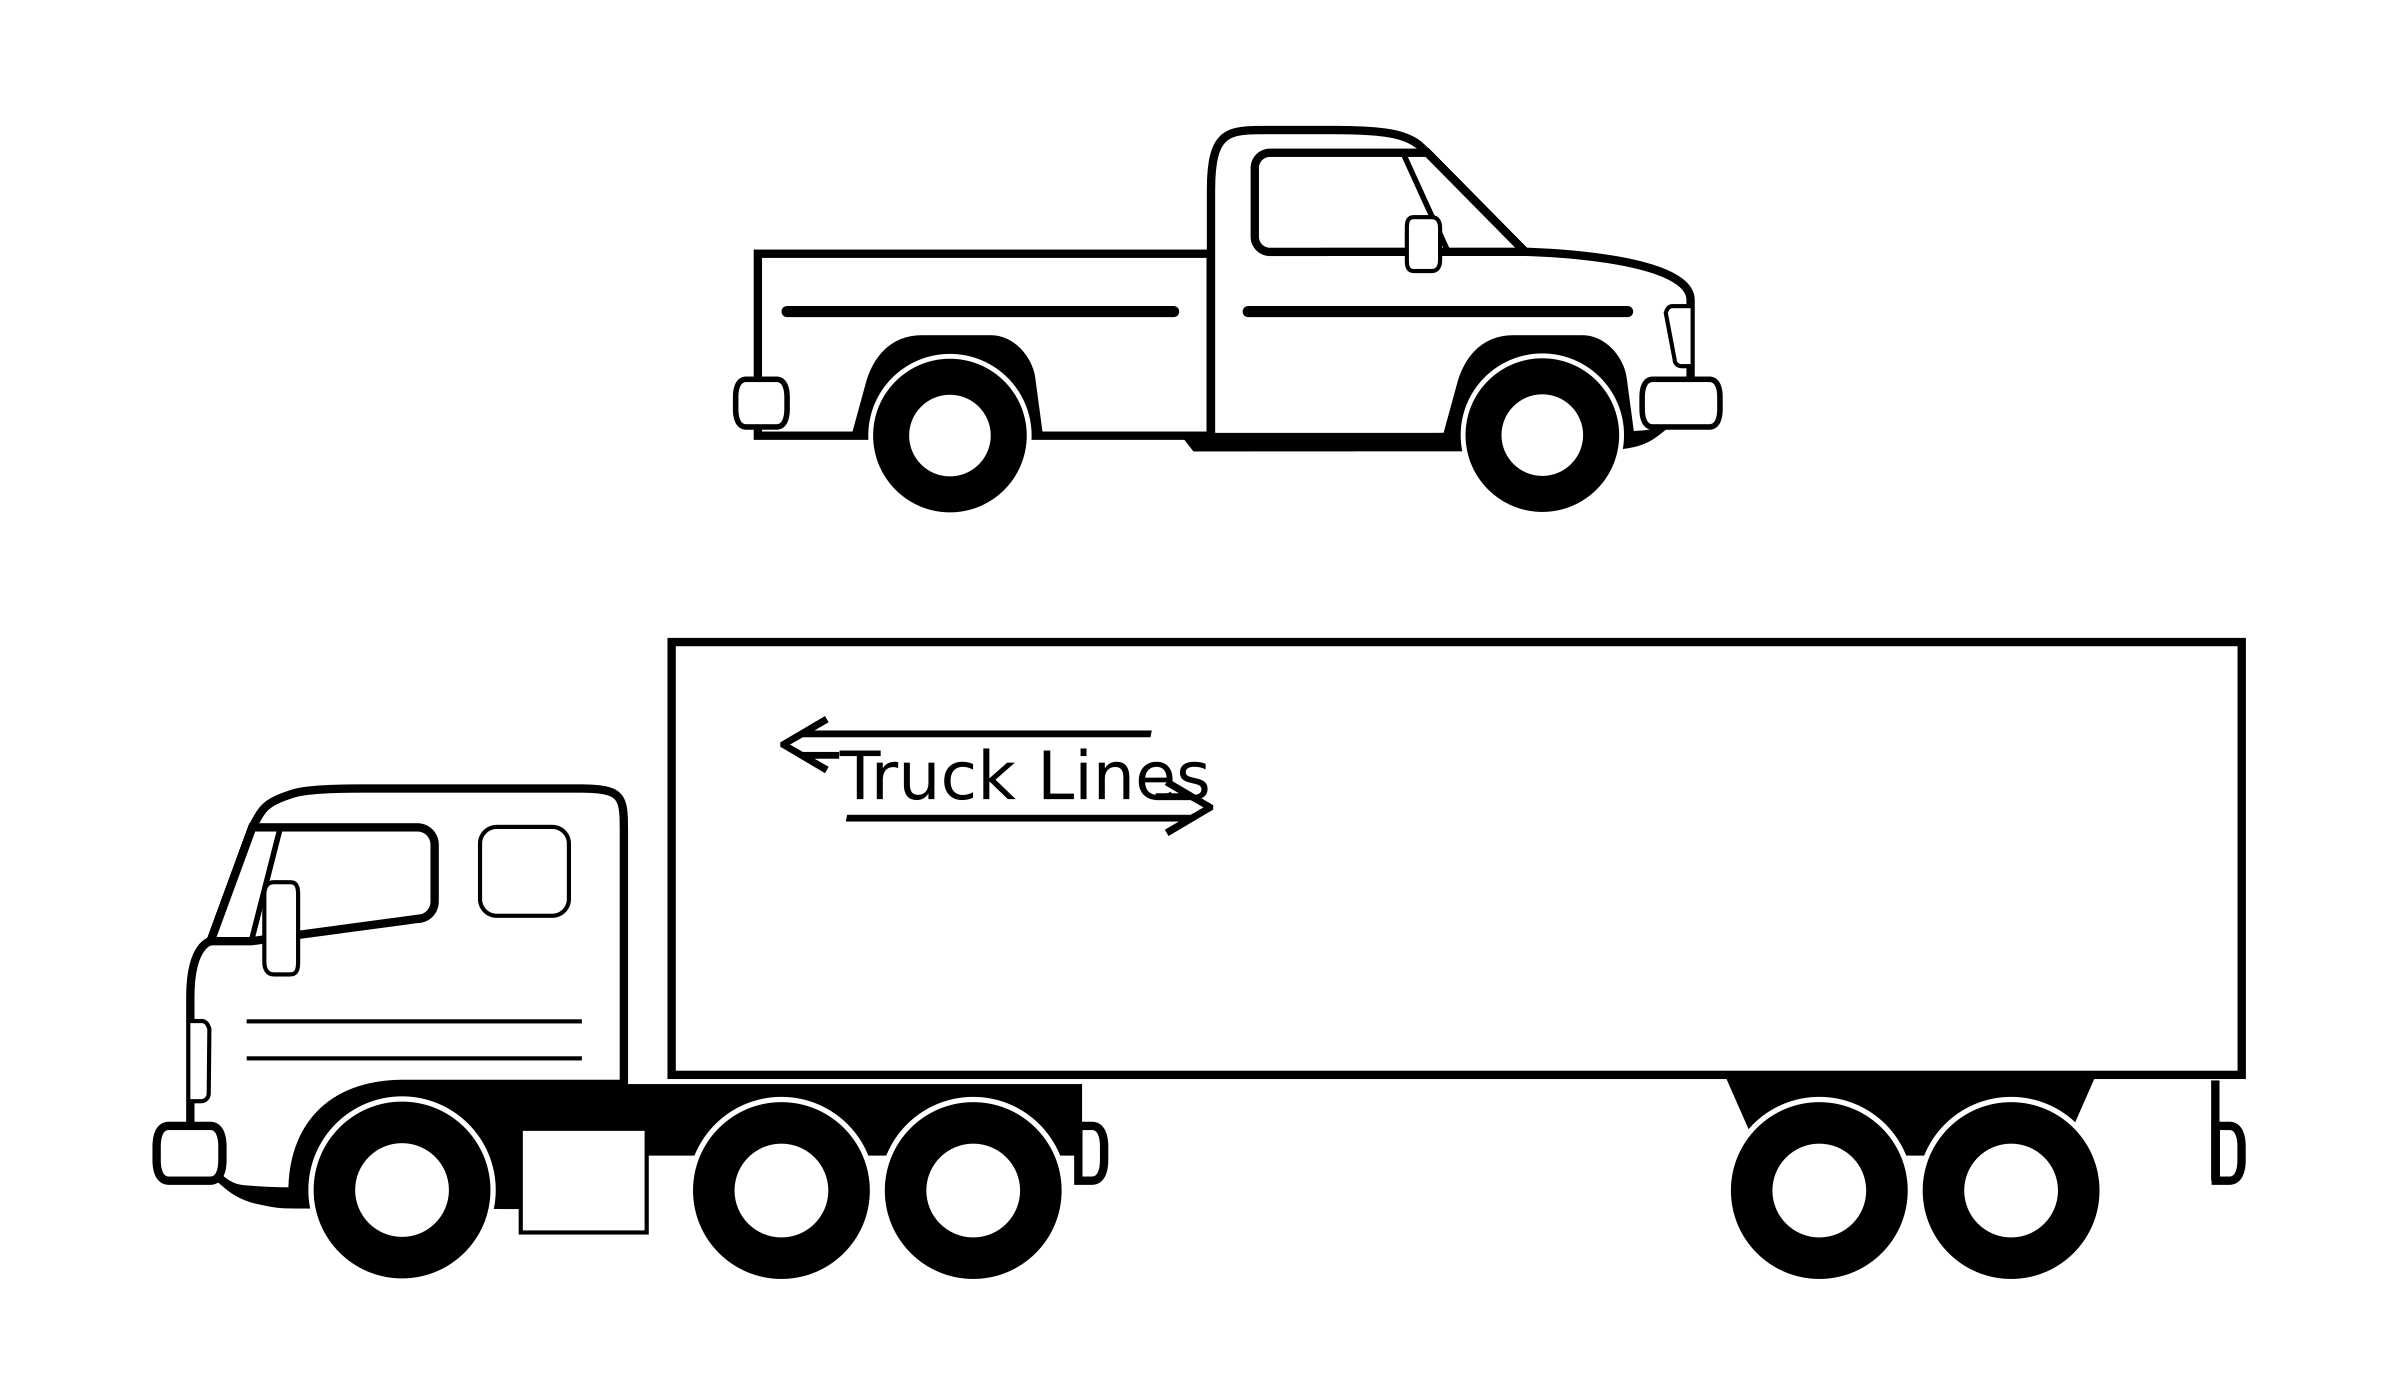 Big truck clipart black and white graphic download Semi truck big clipart clipartandscrap - ClipartBarn graphic download